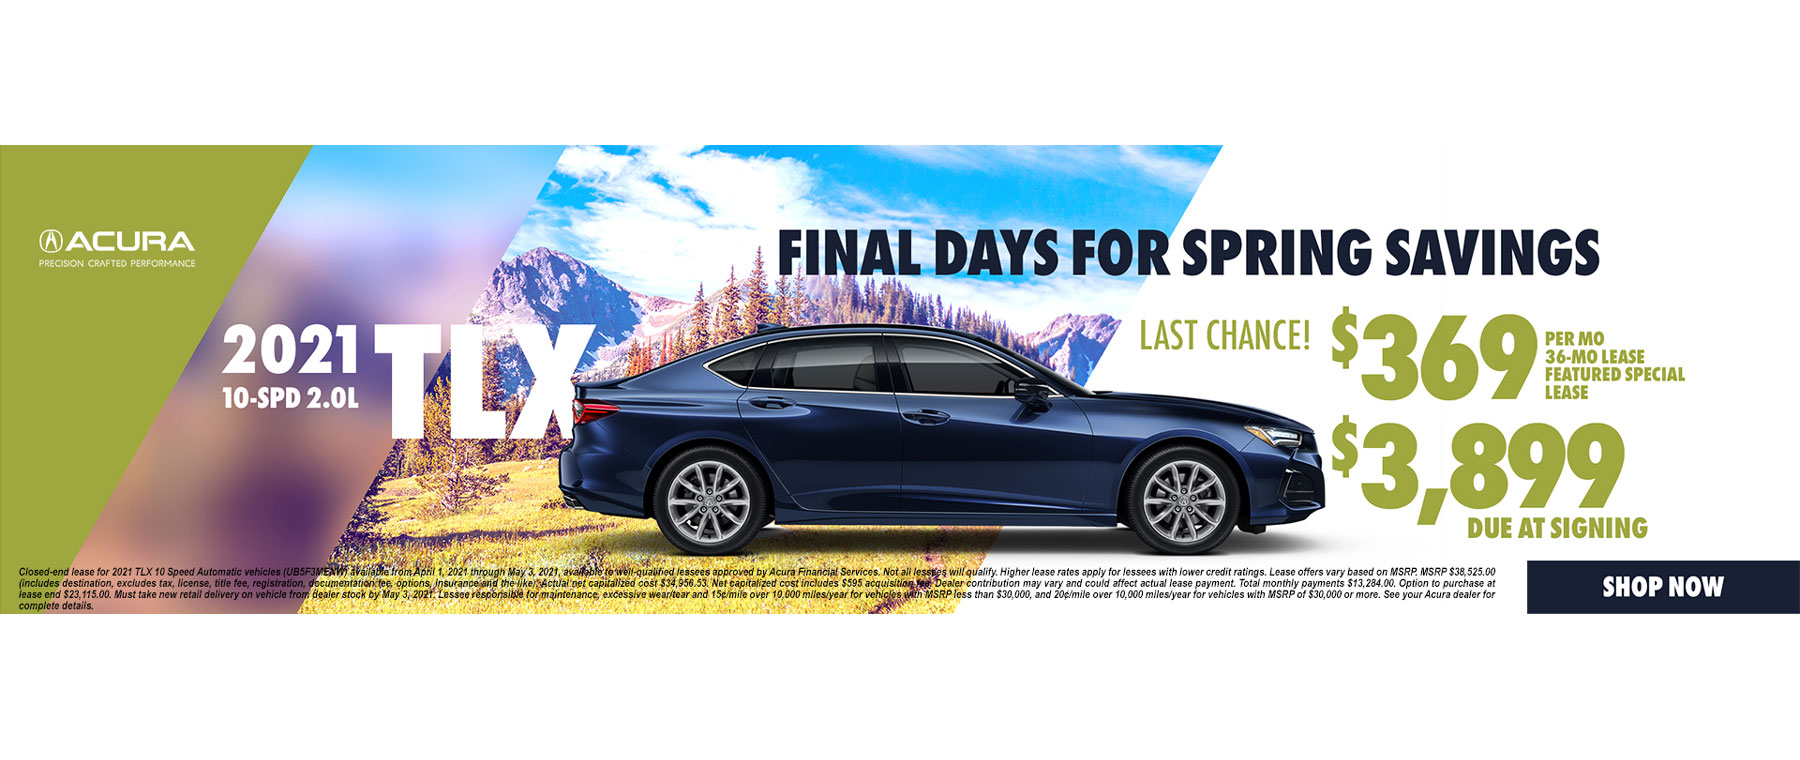 2021 Acura TLX Lease and APR Special